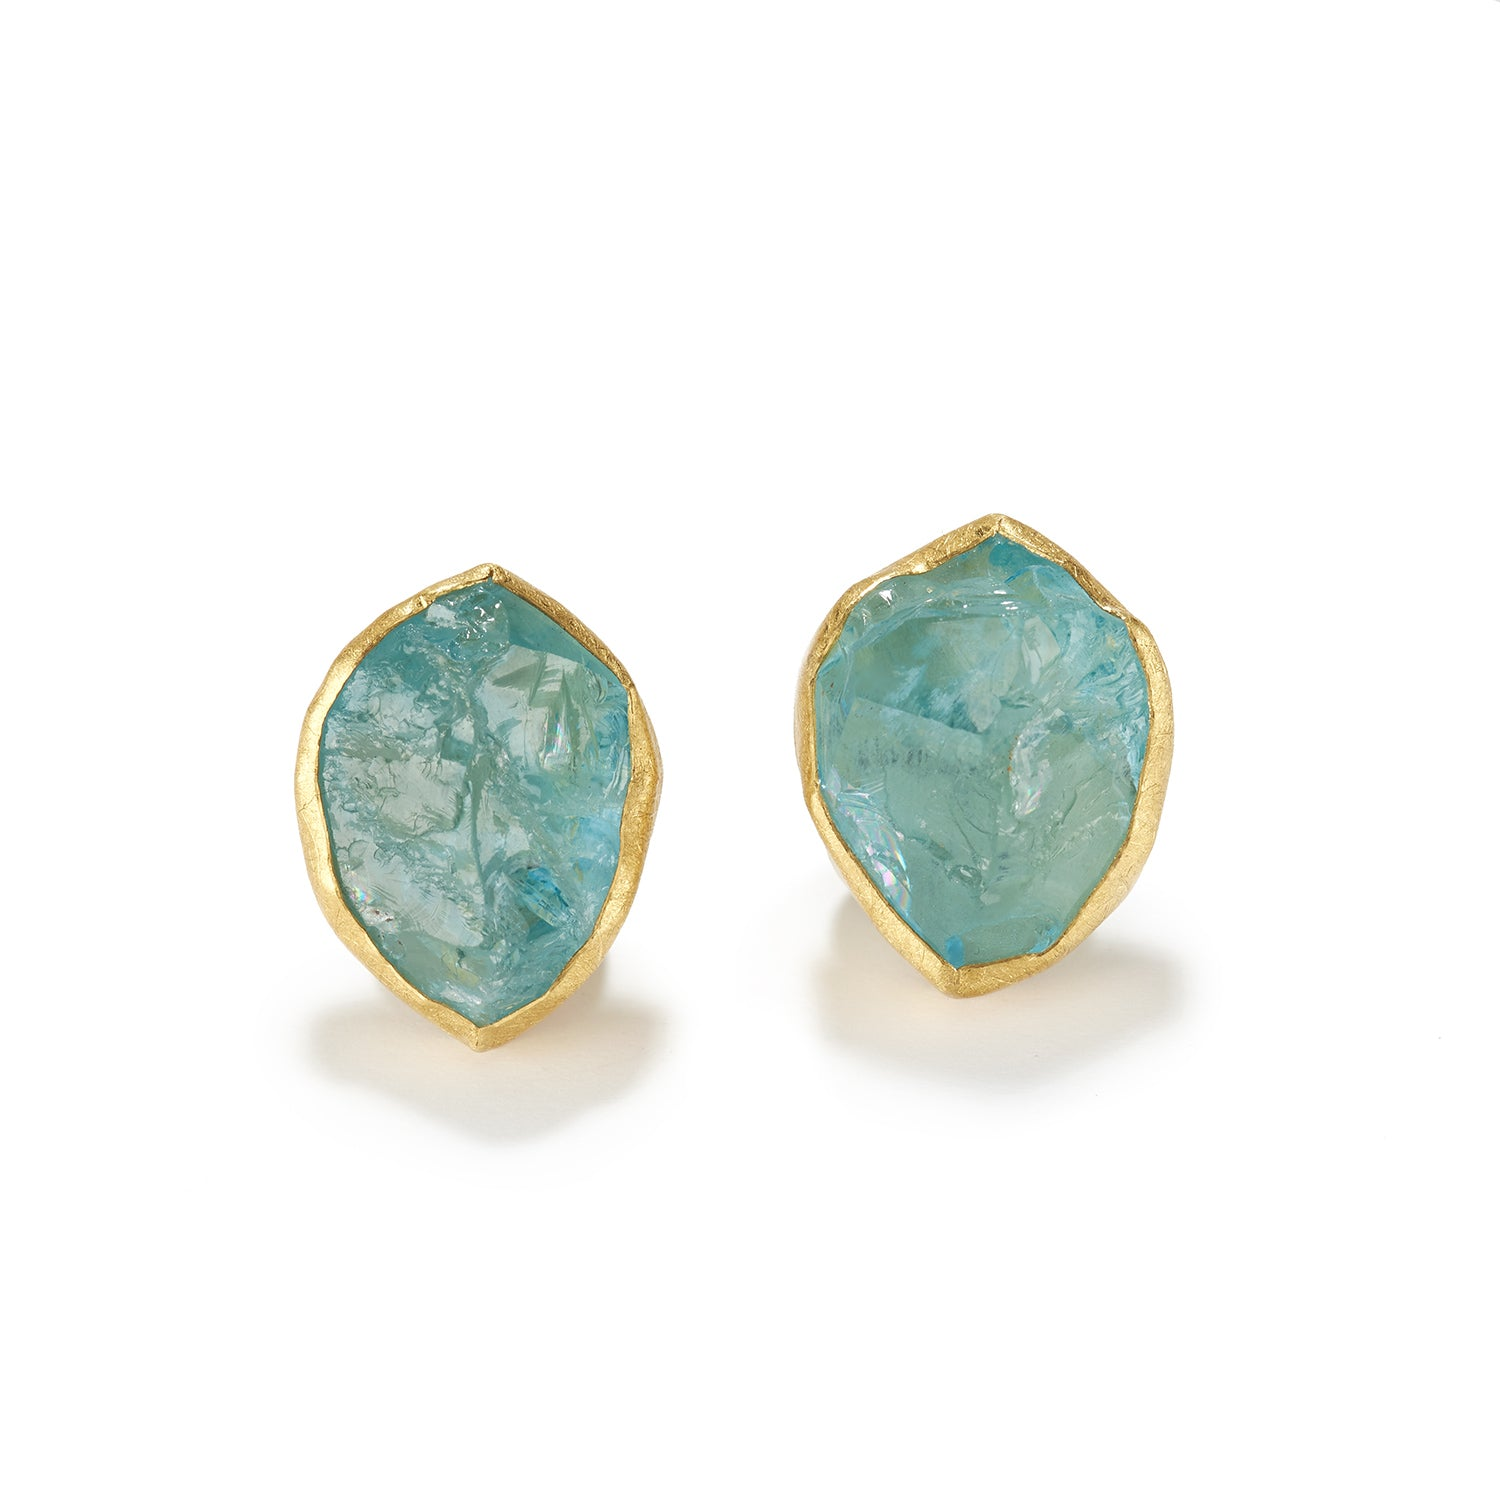 Aqua Crystal Omega Earrings